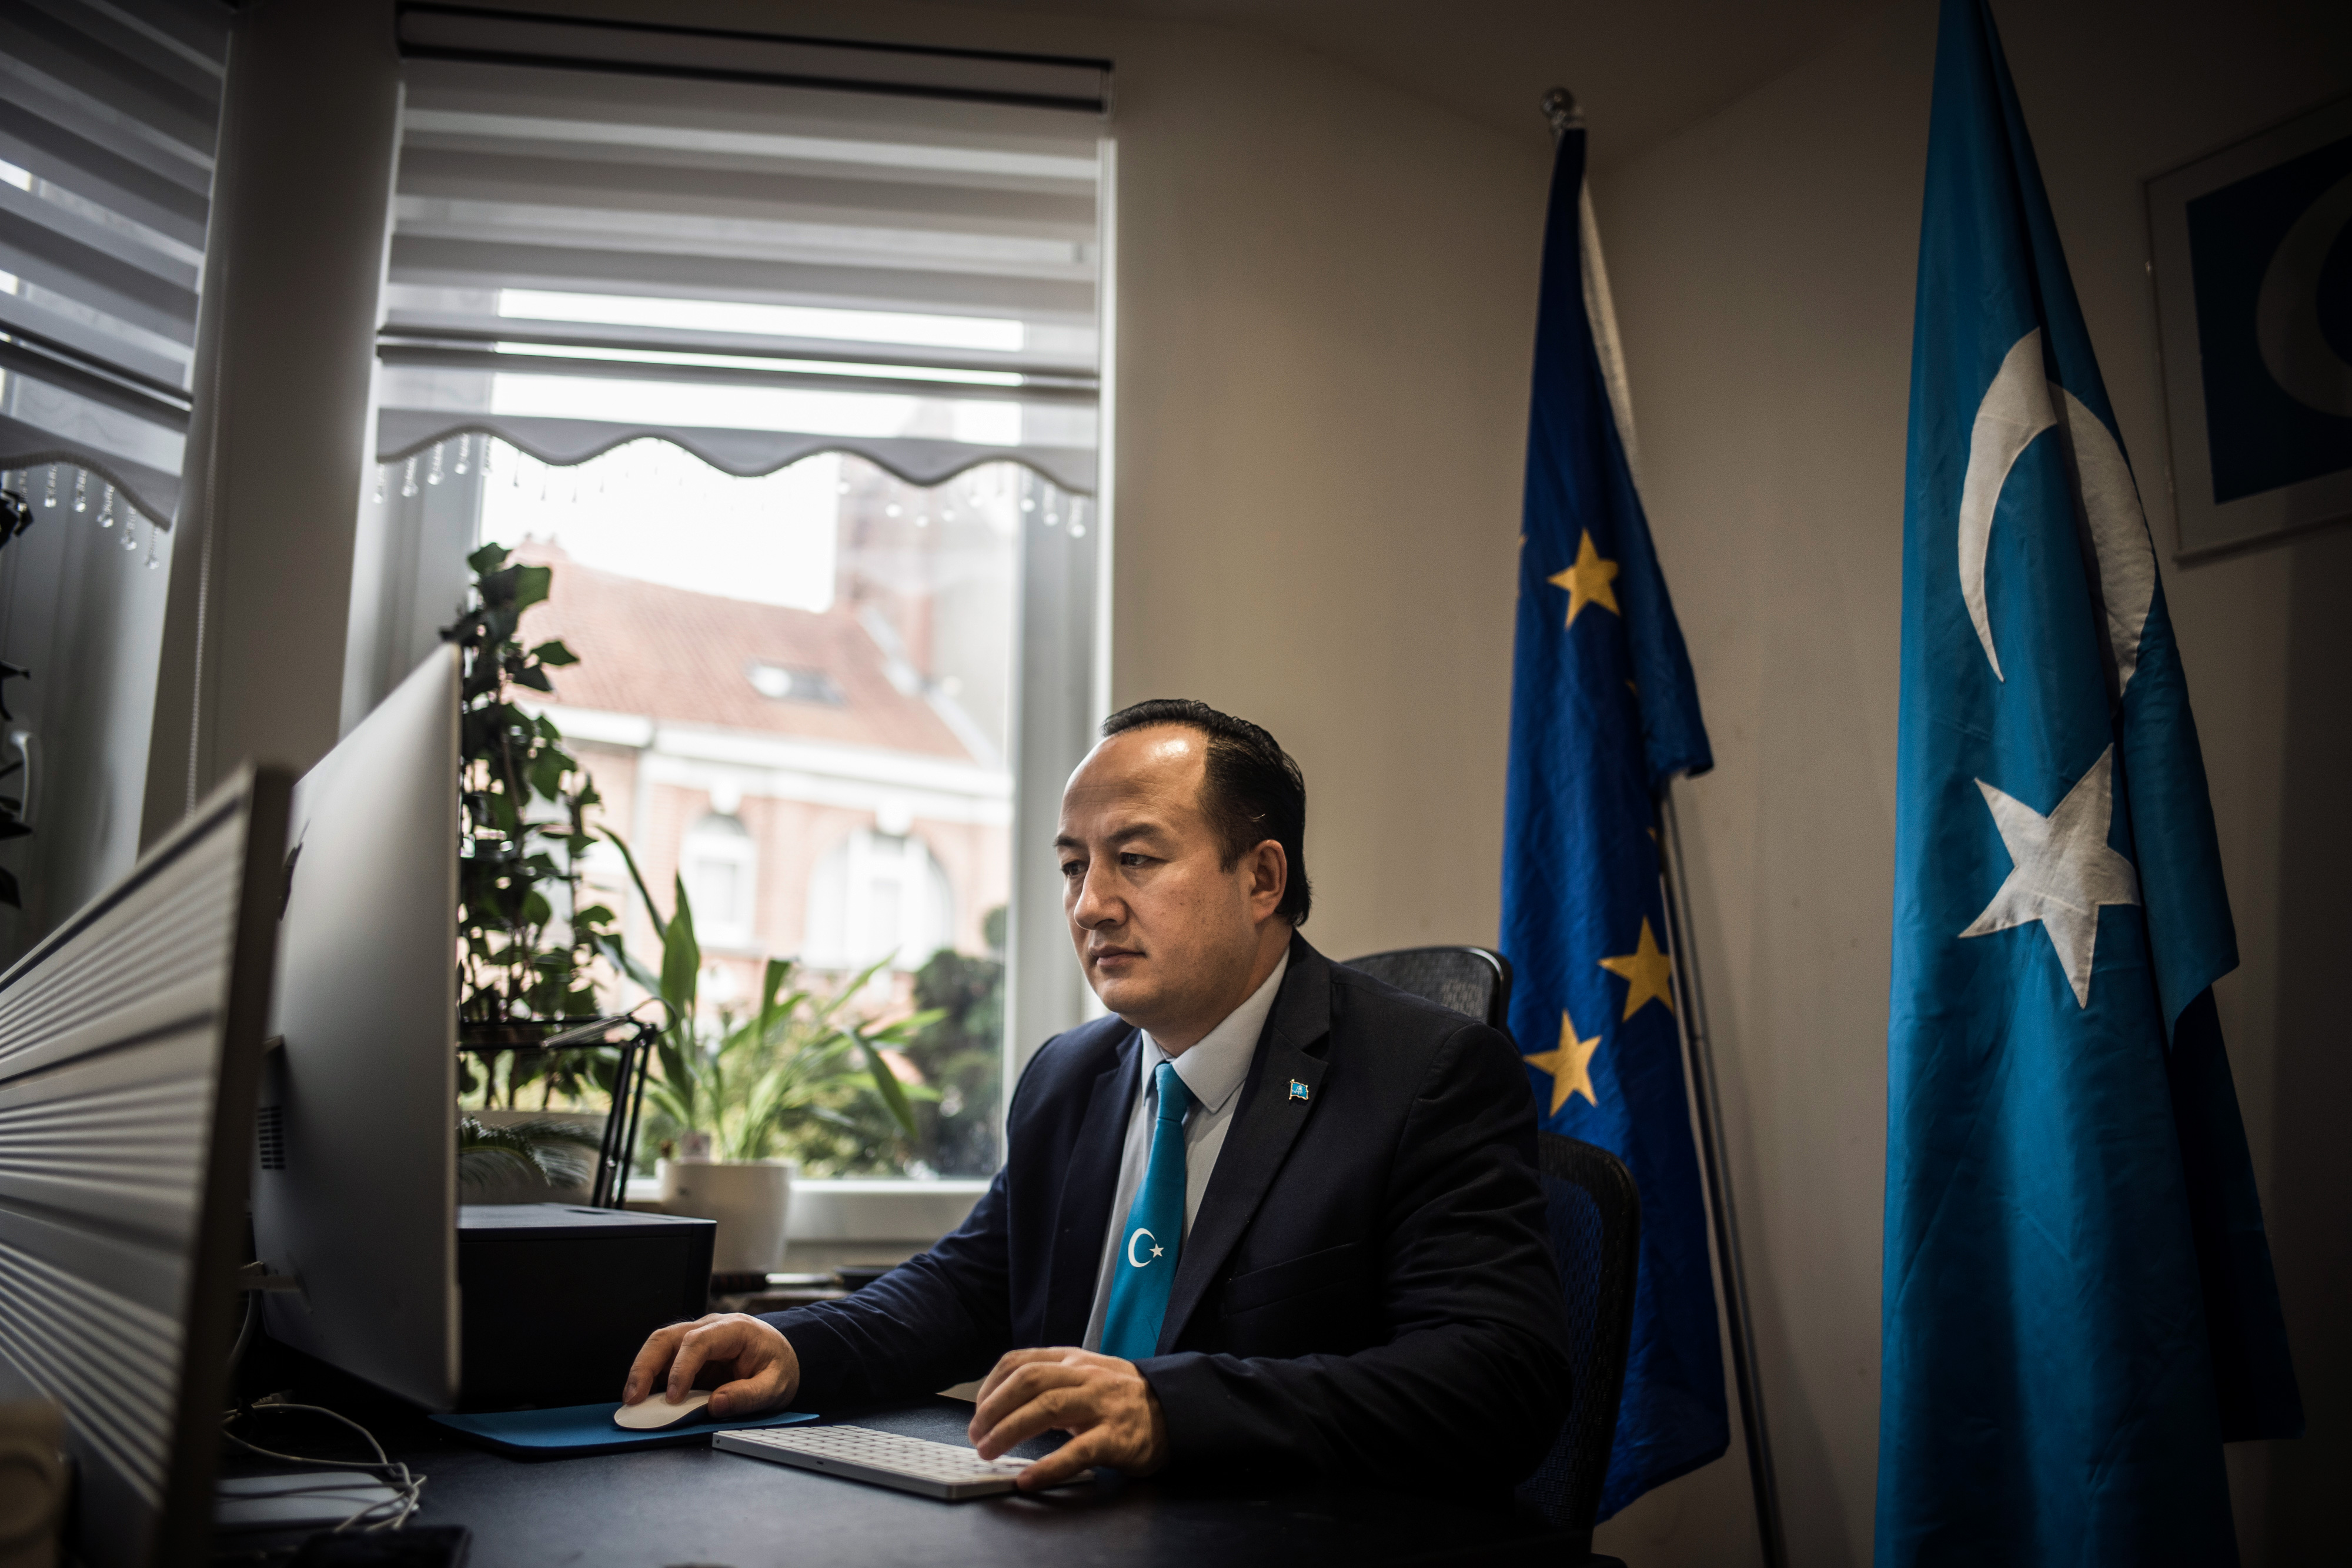 Nejmiddin Qarluq, an ethnic Uyghur, and political activist who fled china and was given asylum in Belgium is pictured at his new home in Bruxelles on Jan. 21, 2021.